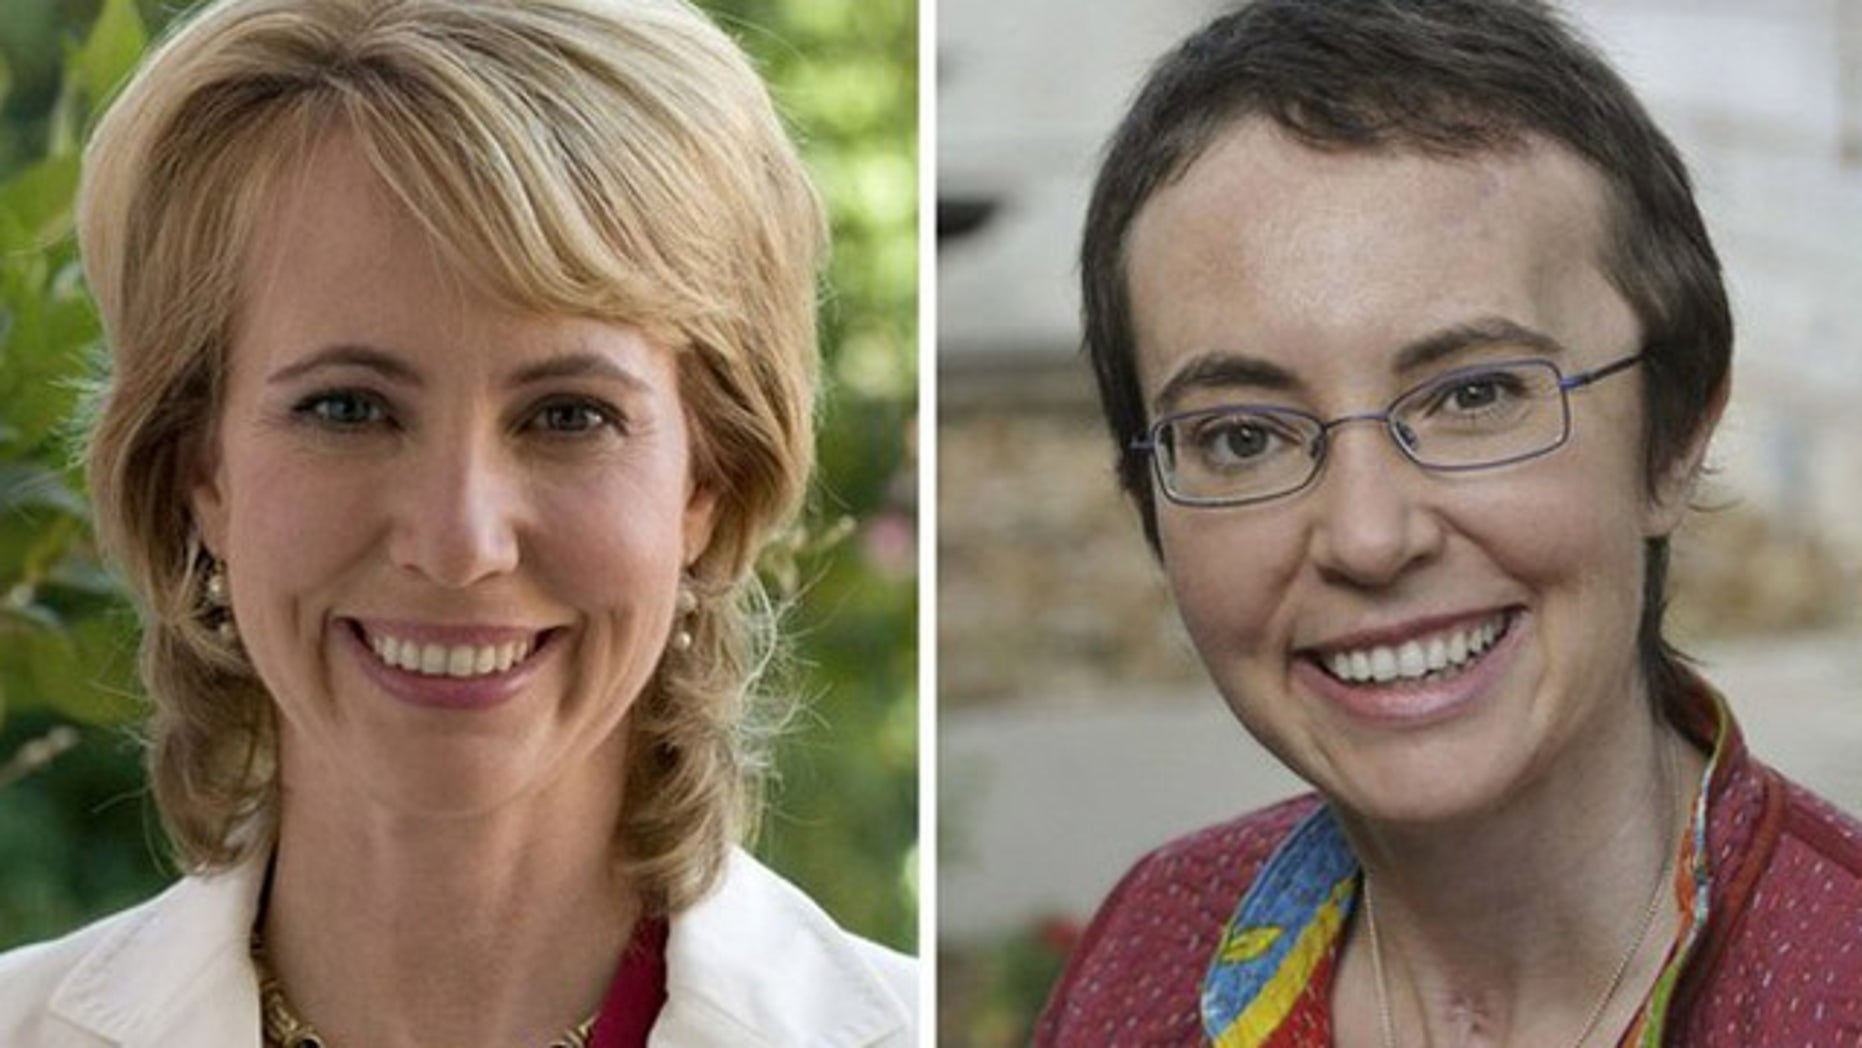 A combination photo shows U.S. Rep. Gabrielle Giffords, right, smiling at TIRR Memorial Hermann Hospital in Houston in a May 17, 2011 photo released on her Facebook page and another during an appearance in Tucson, Arizona in an undated 2010 handout photo.